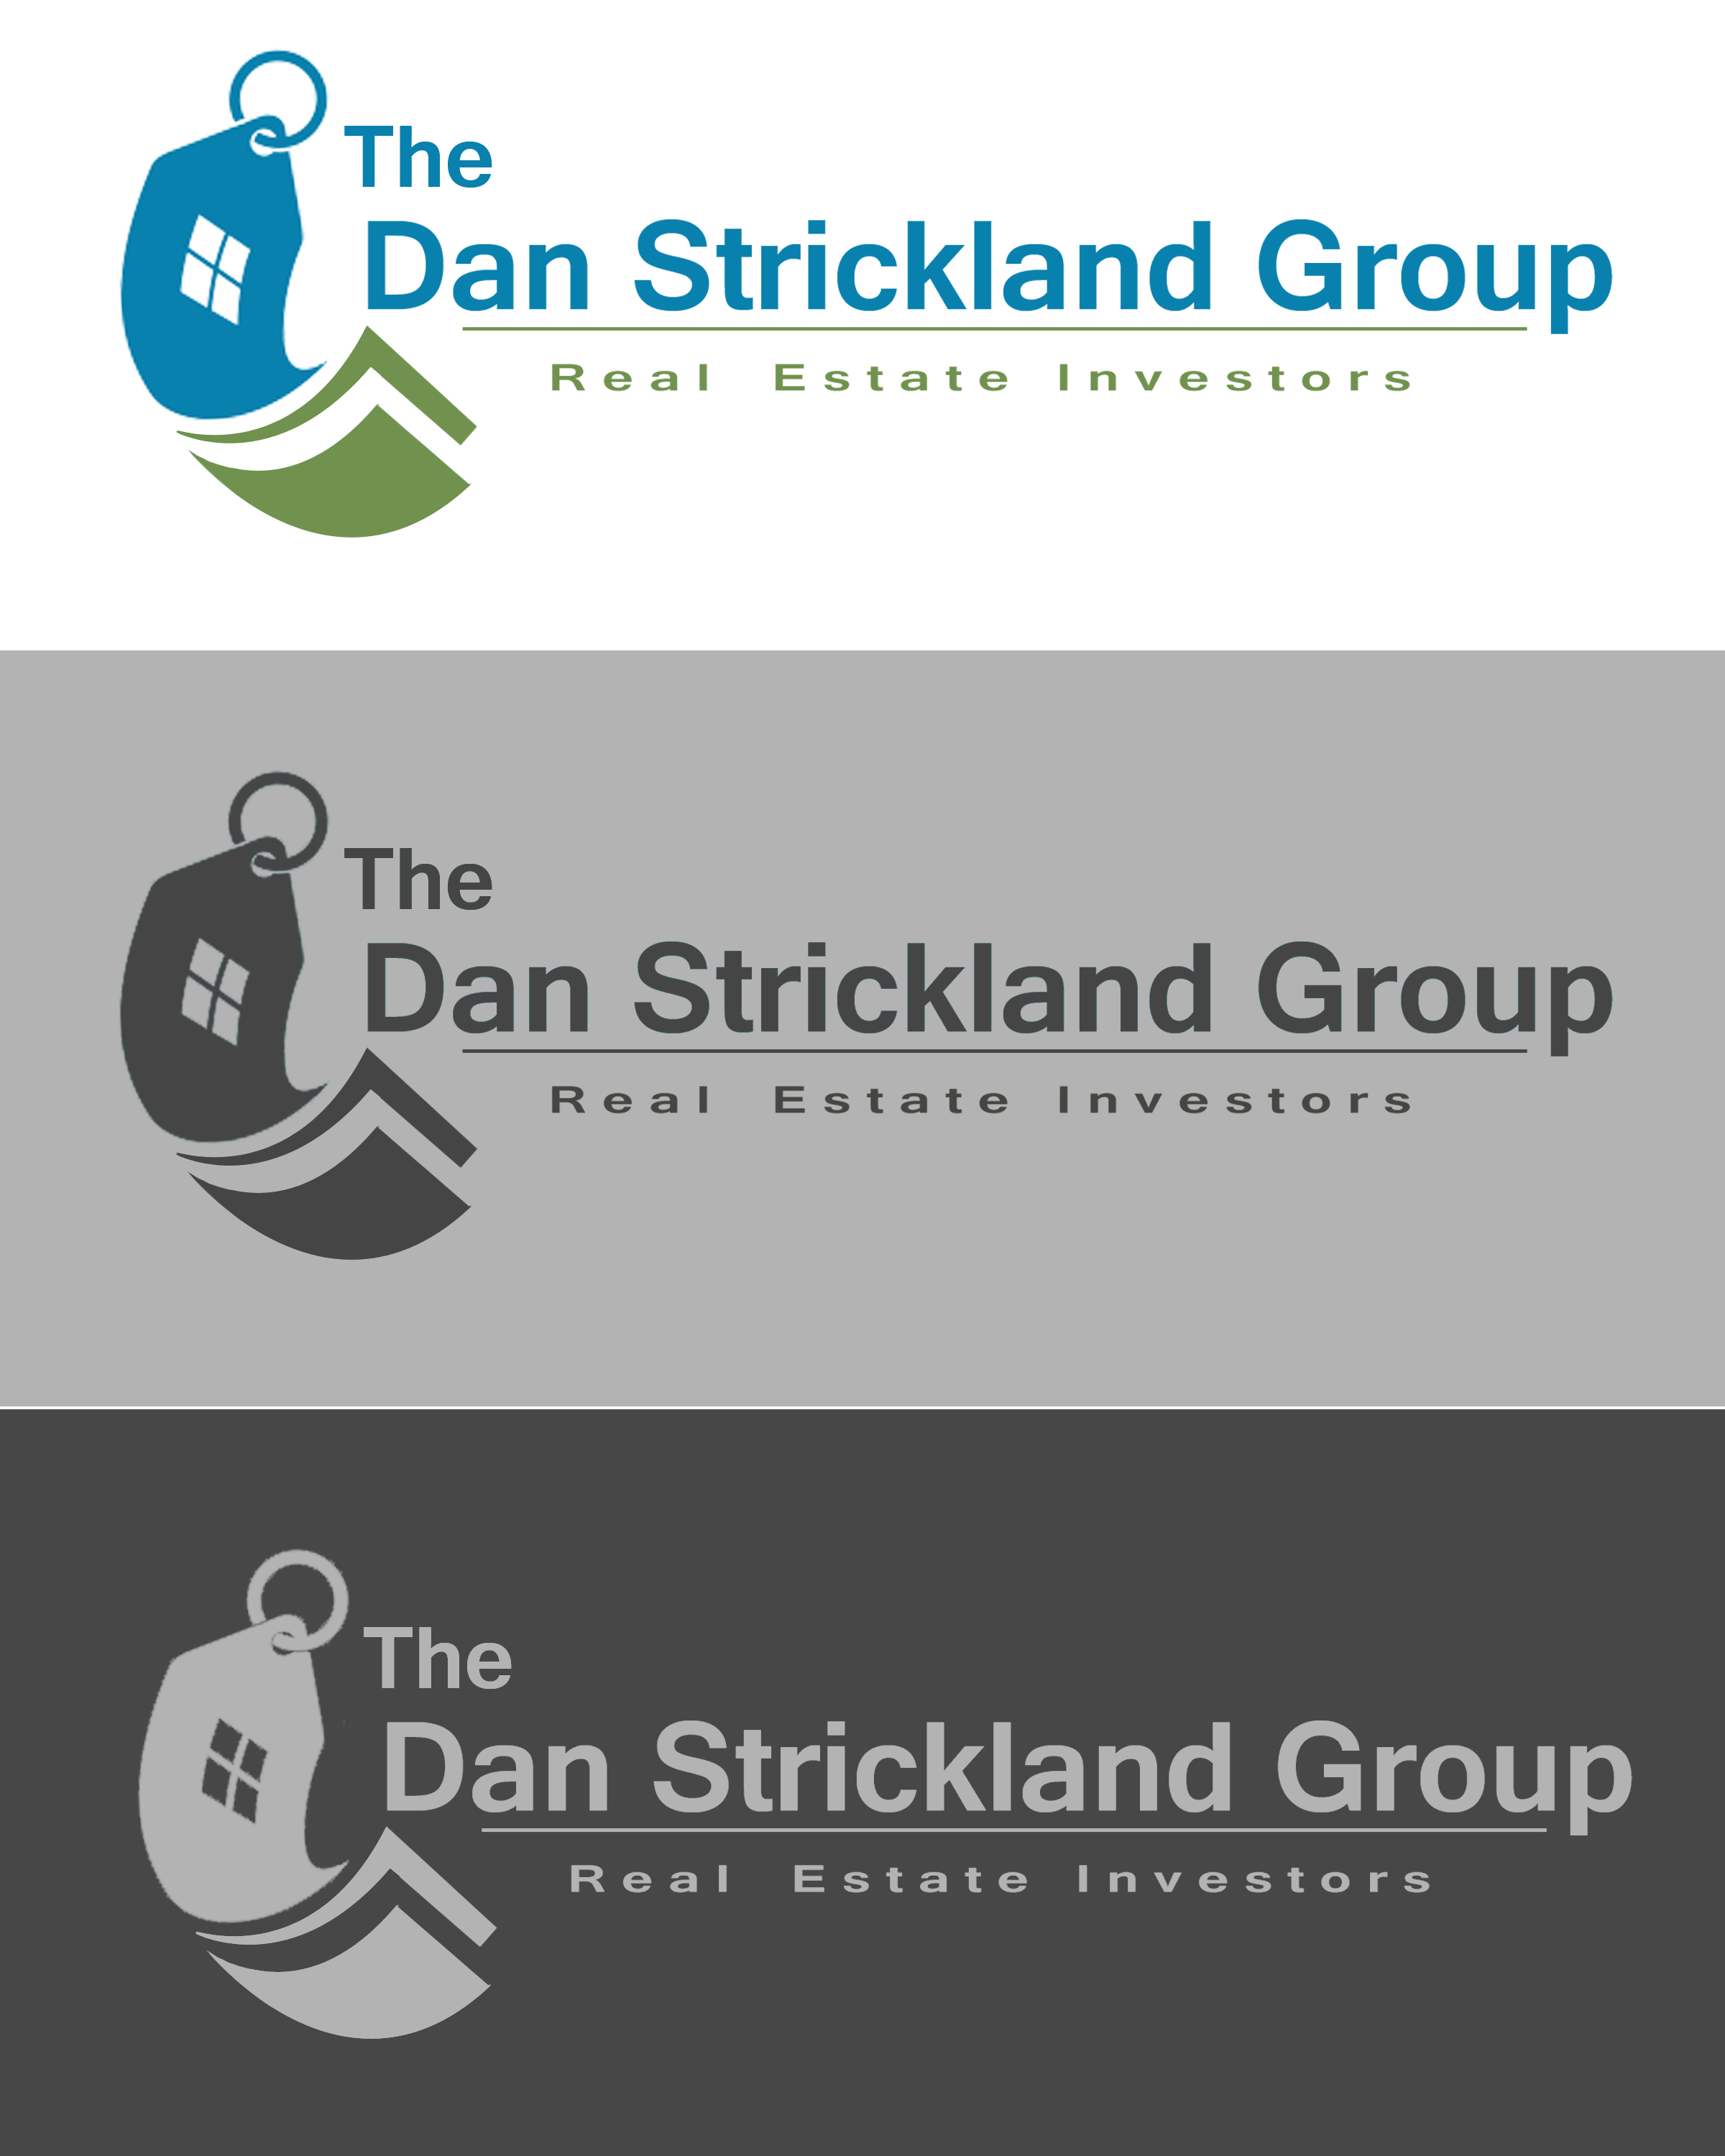 Logo Design by Jack Rajgor - Entry No. 243 in the Logo Design Contest Creative Logo Design for The Dan Strickland Group.